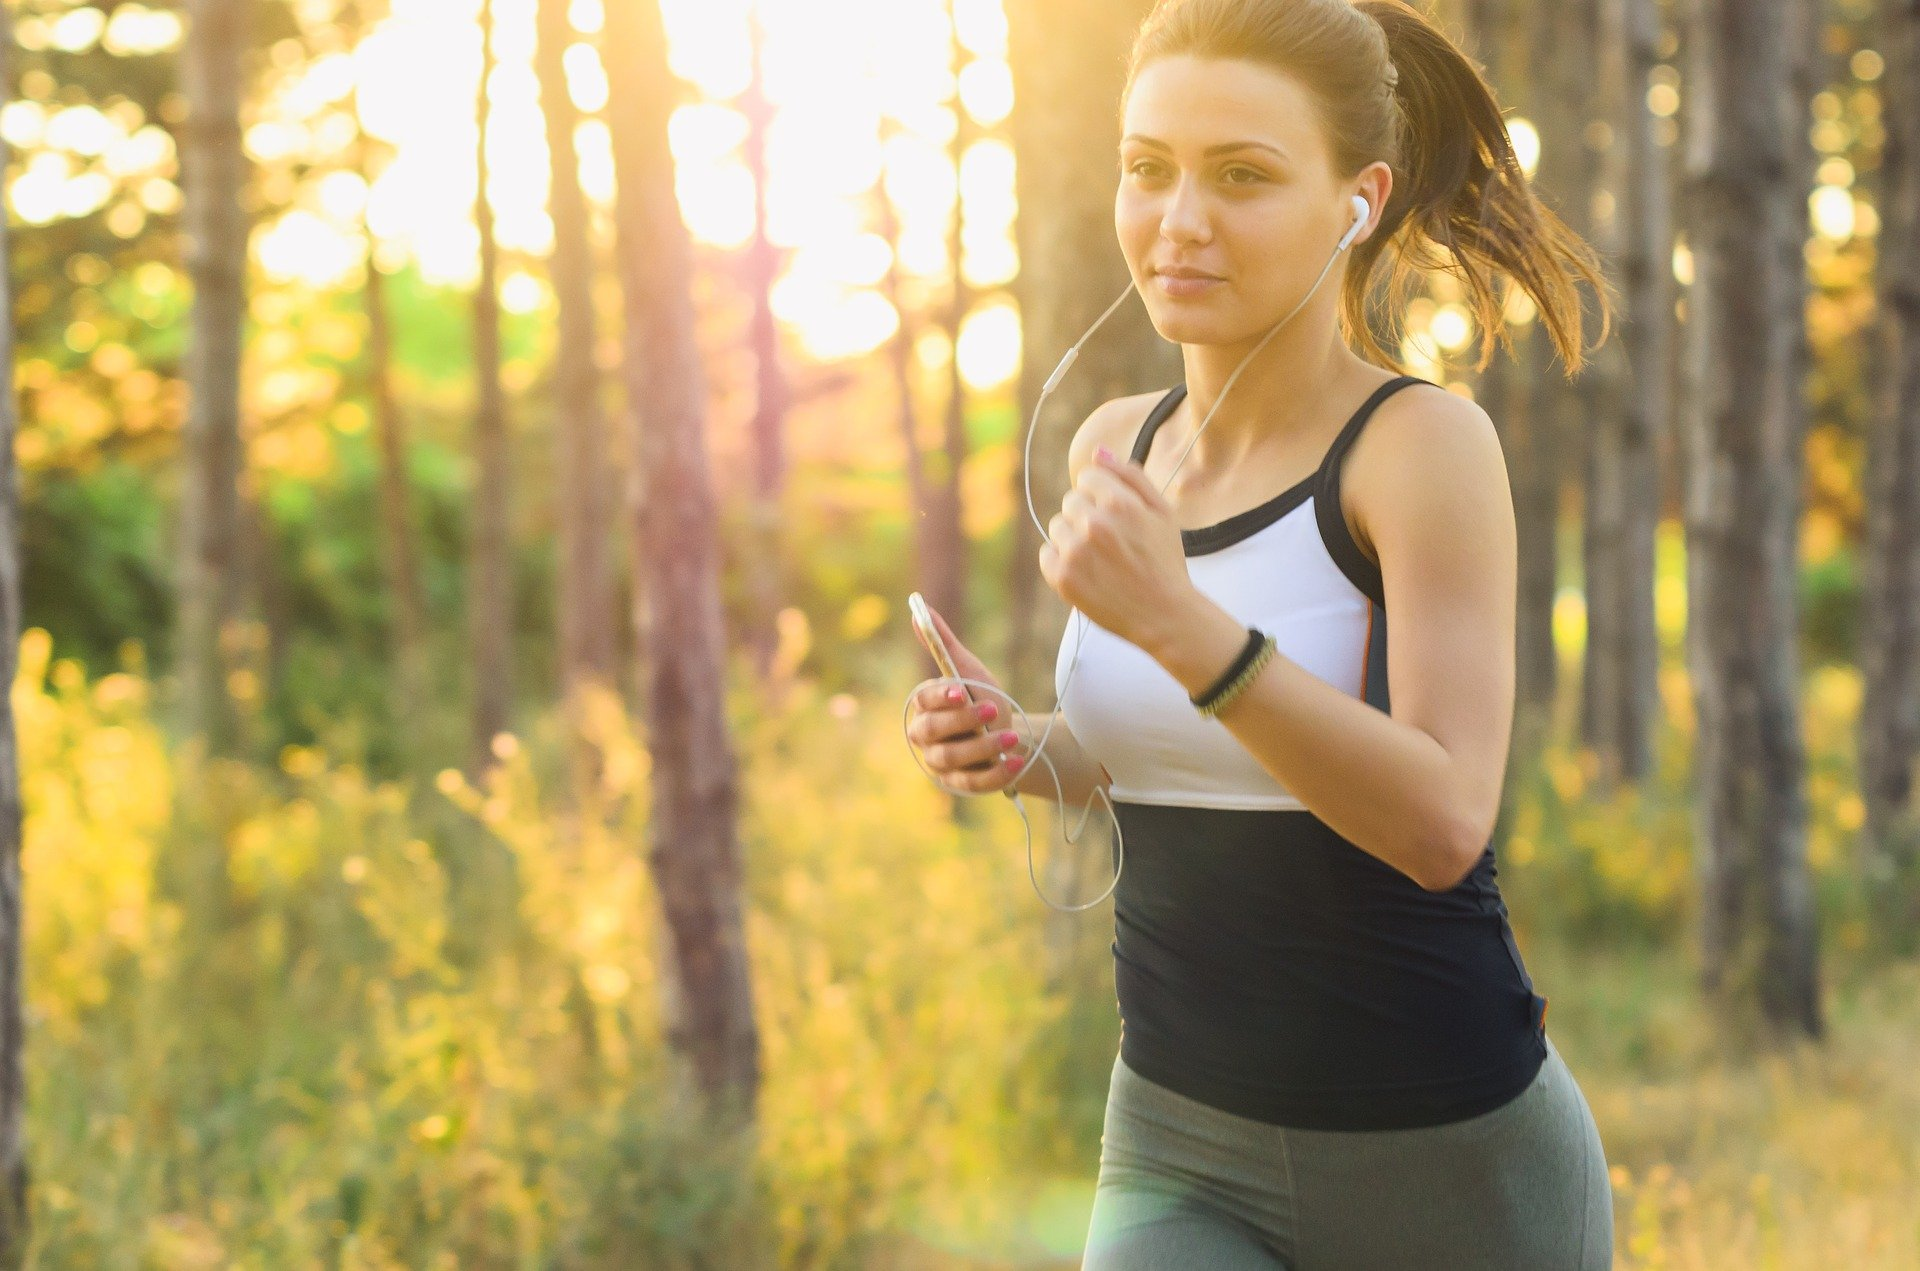 Exercise helps to control food thoughts.